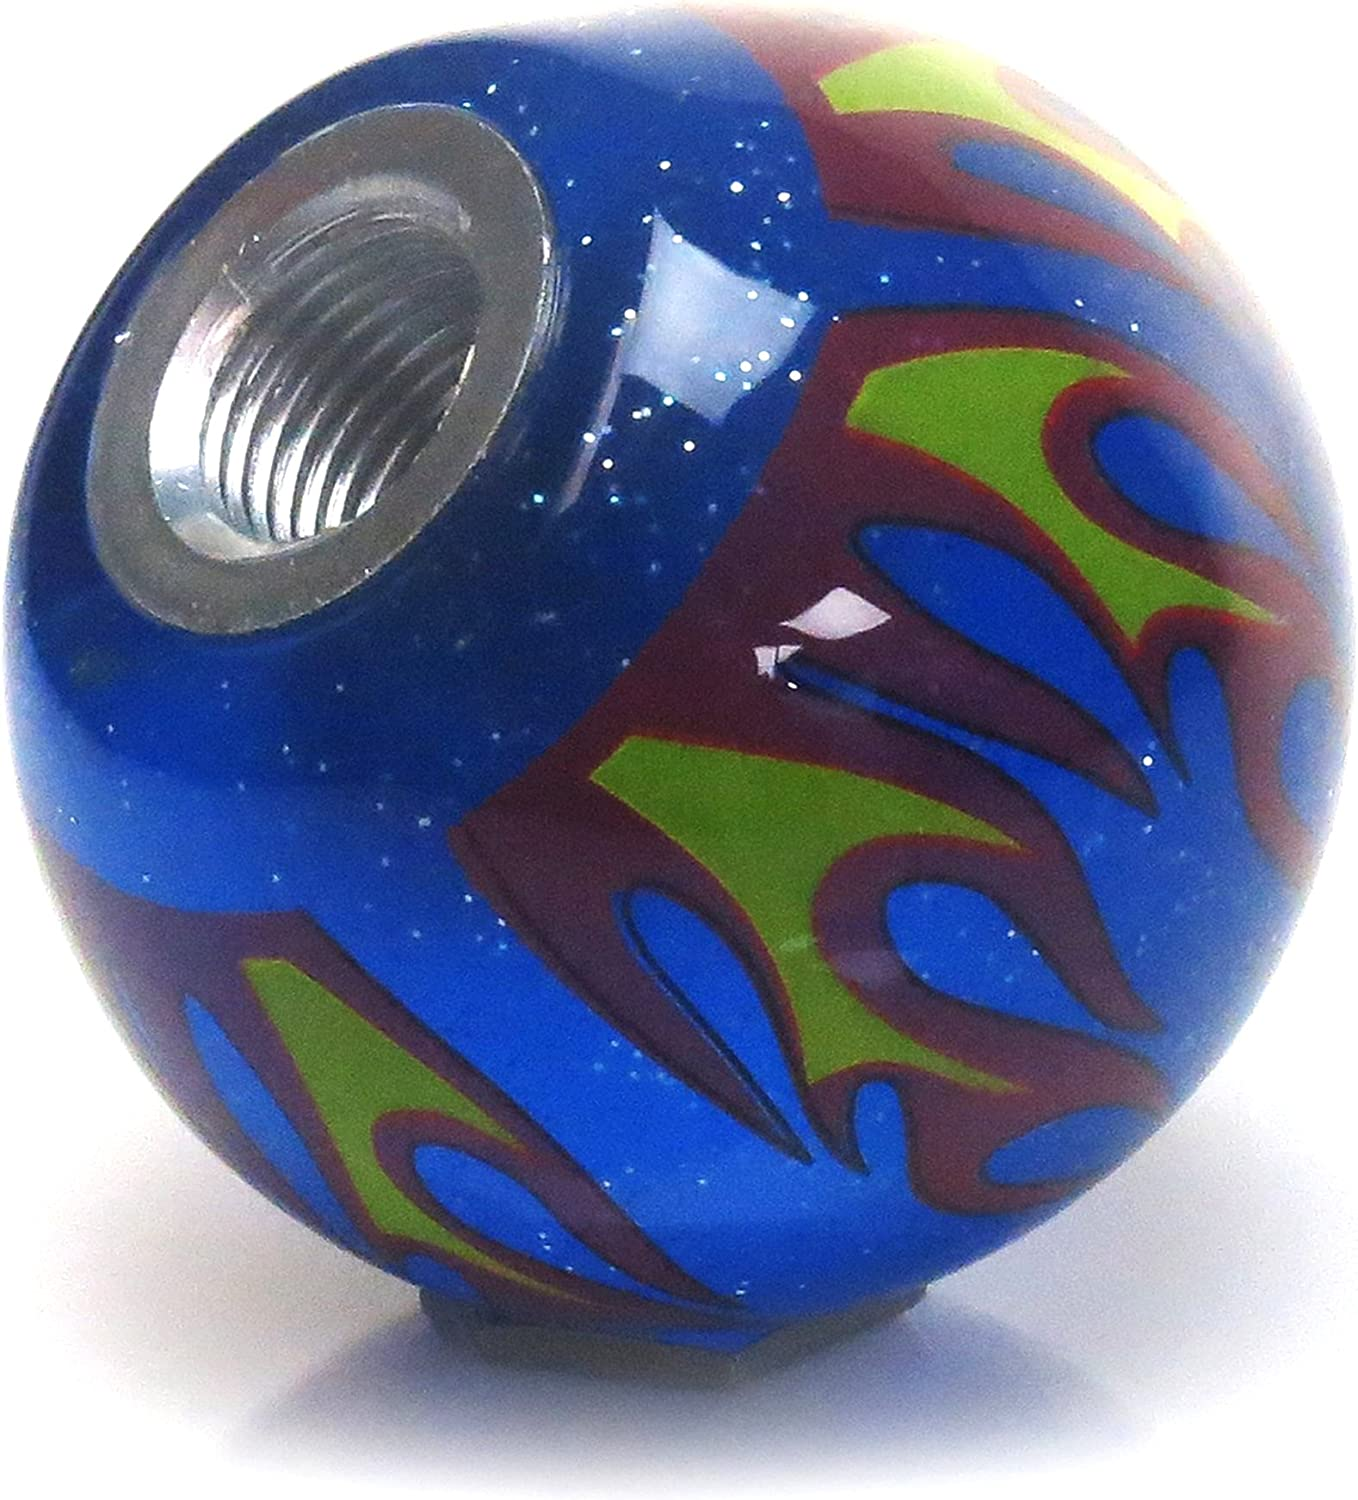 American Shifter 327767 White Built Not Bought Simple Blue Flame Metal Flake Shift Knob with M16 x 1.5 Insert